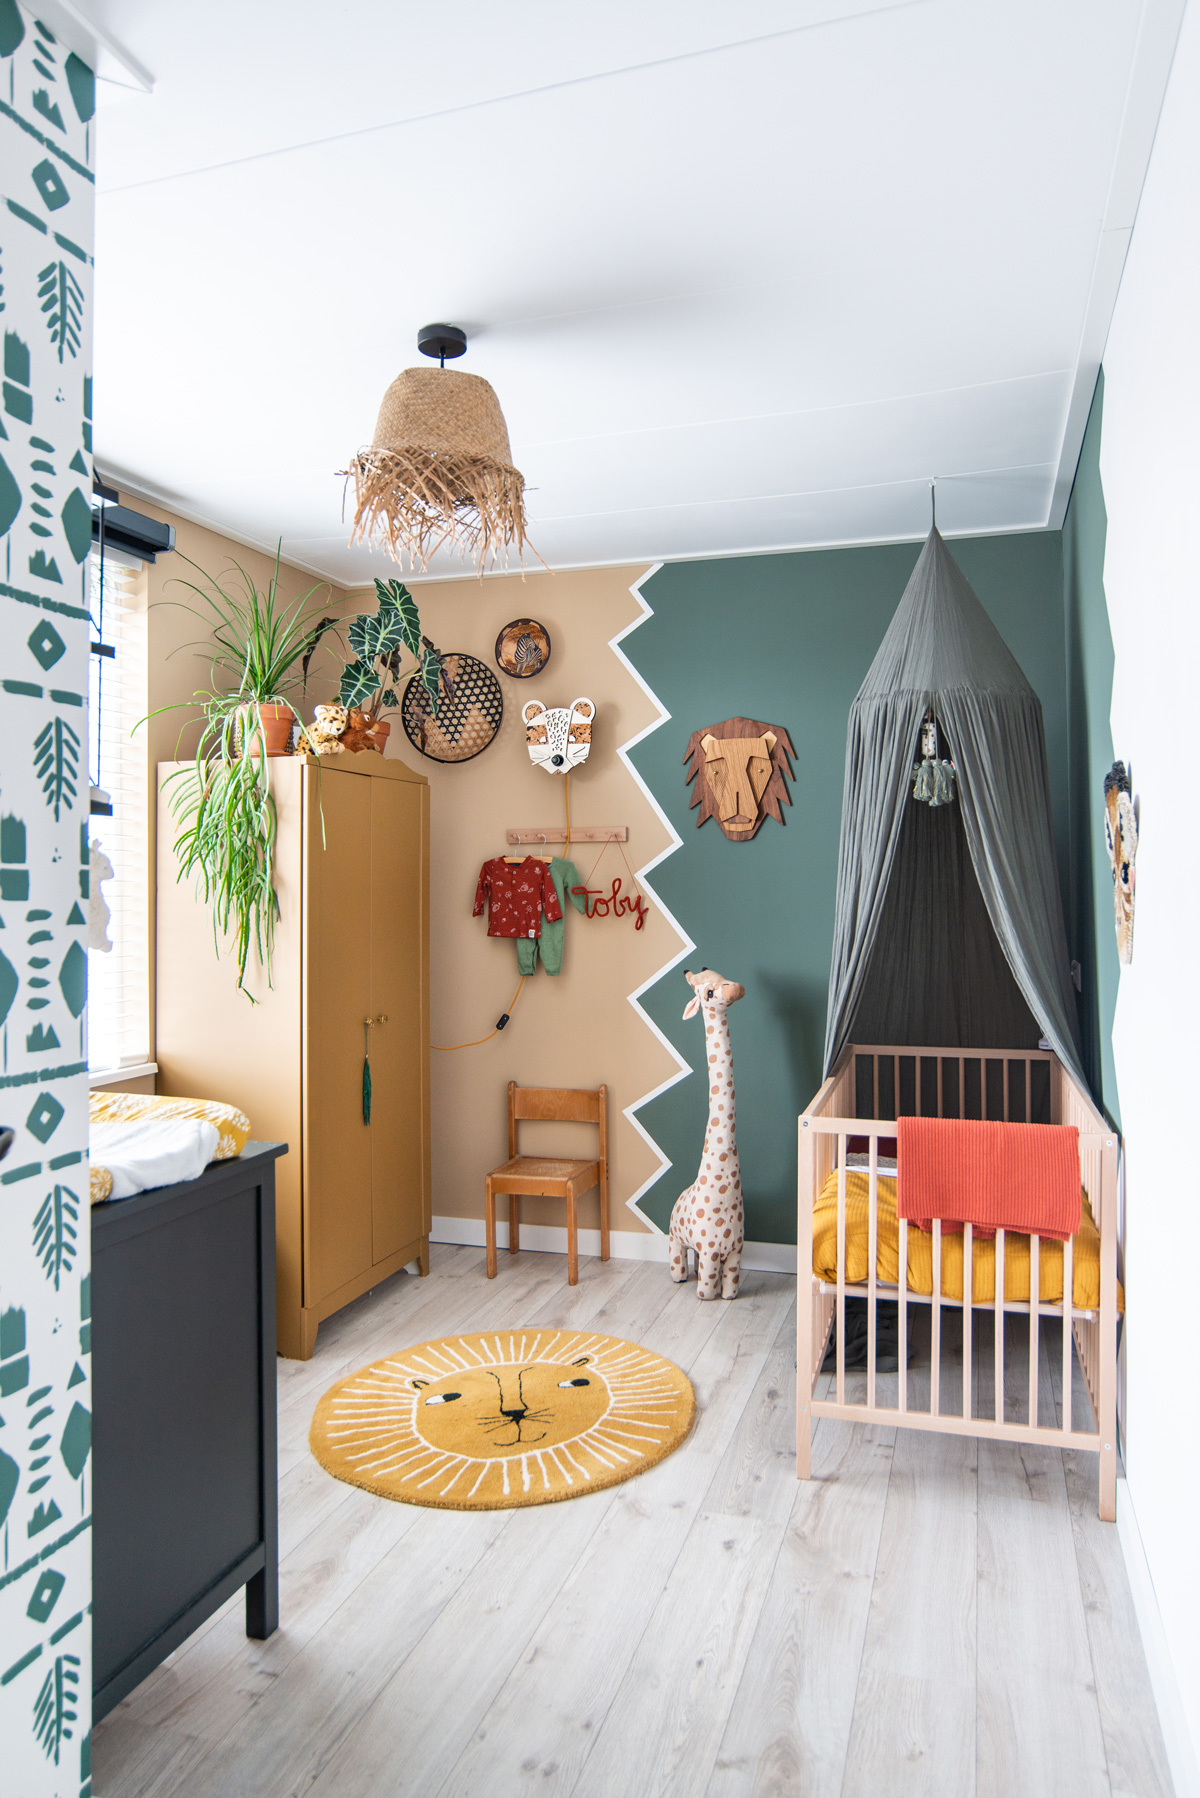 keeelly91 made by the woods nachtlampje interieur babykamer kids room kinderkamer babyinterieur wooninspiratie bohemian nursery room junglekamer